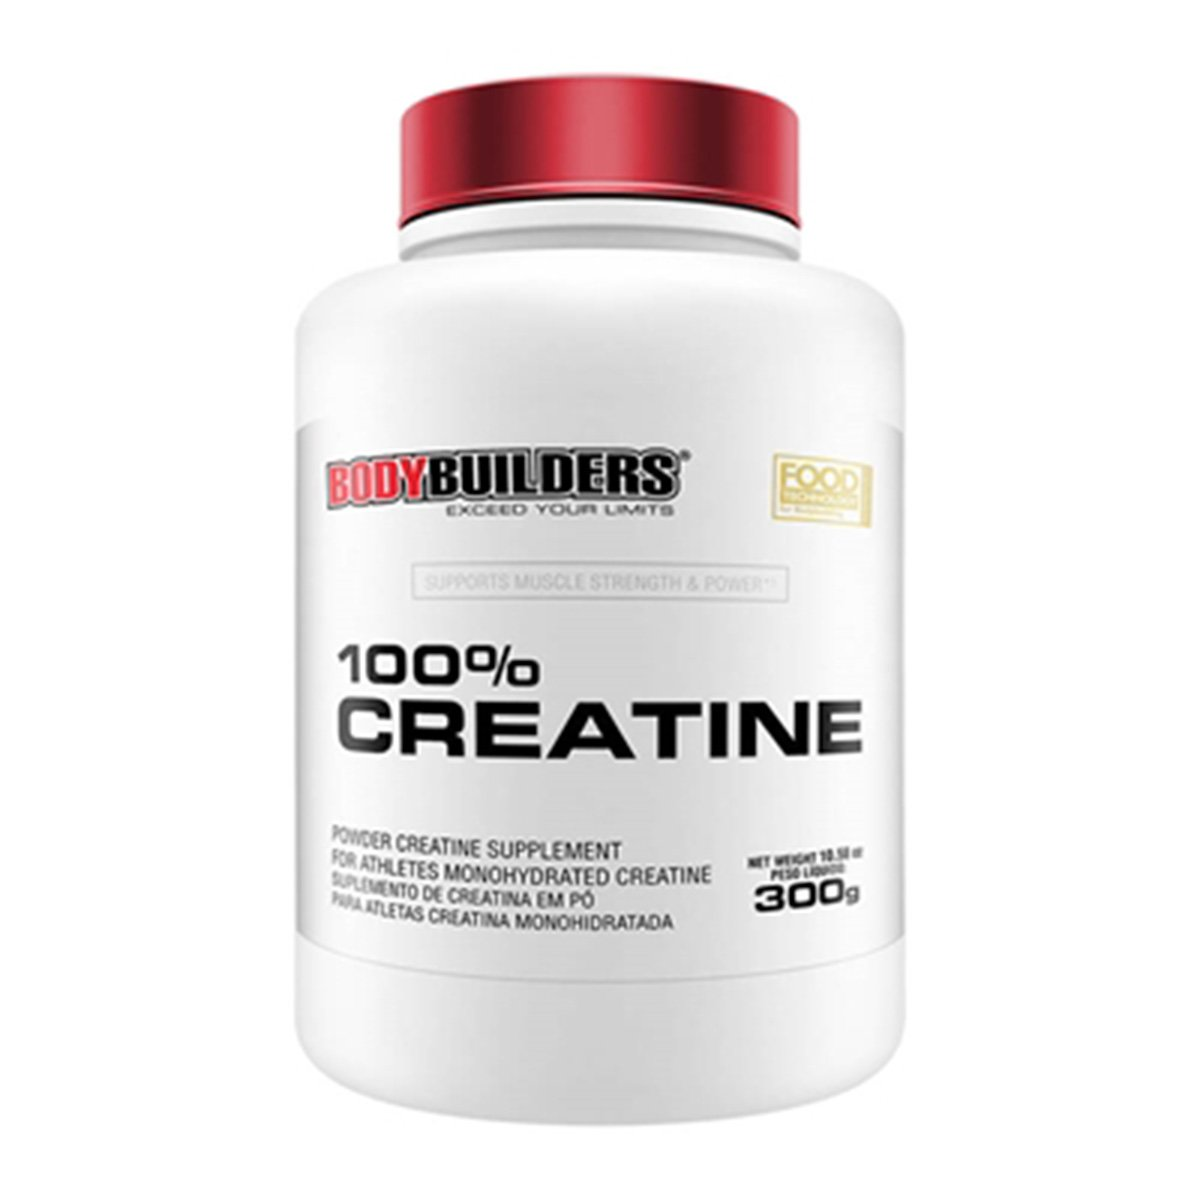 100% Creatine Bodybuilders 300 g 677f0f15369ca